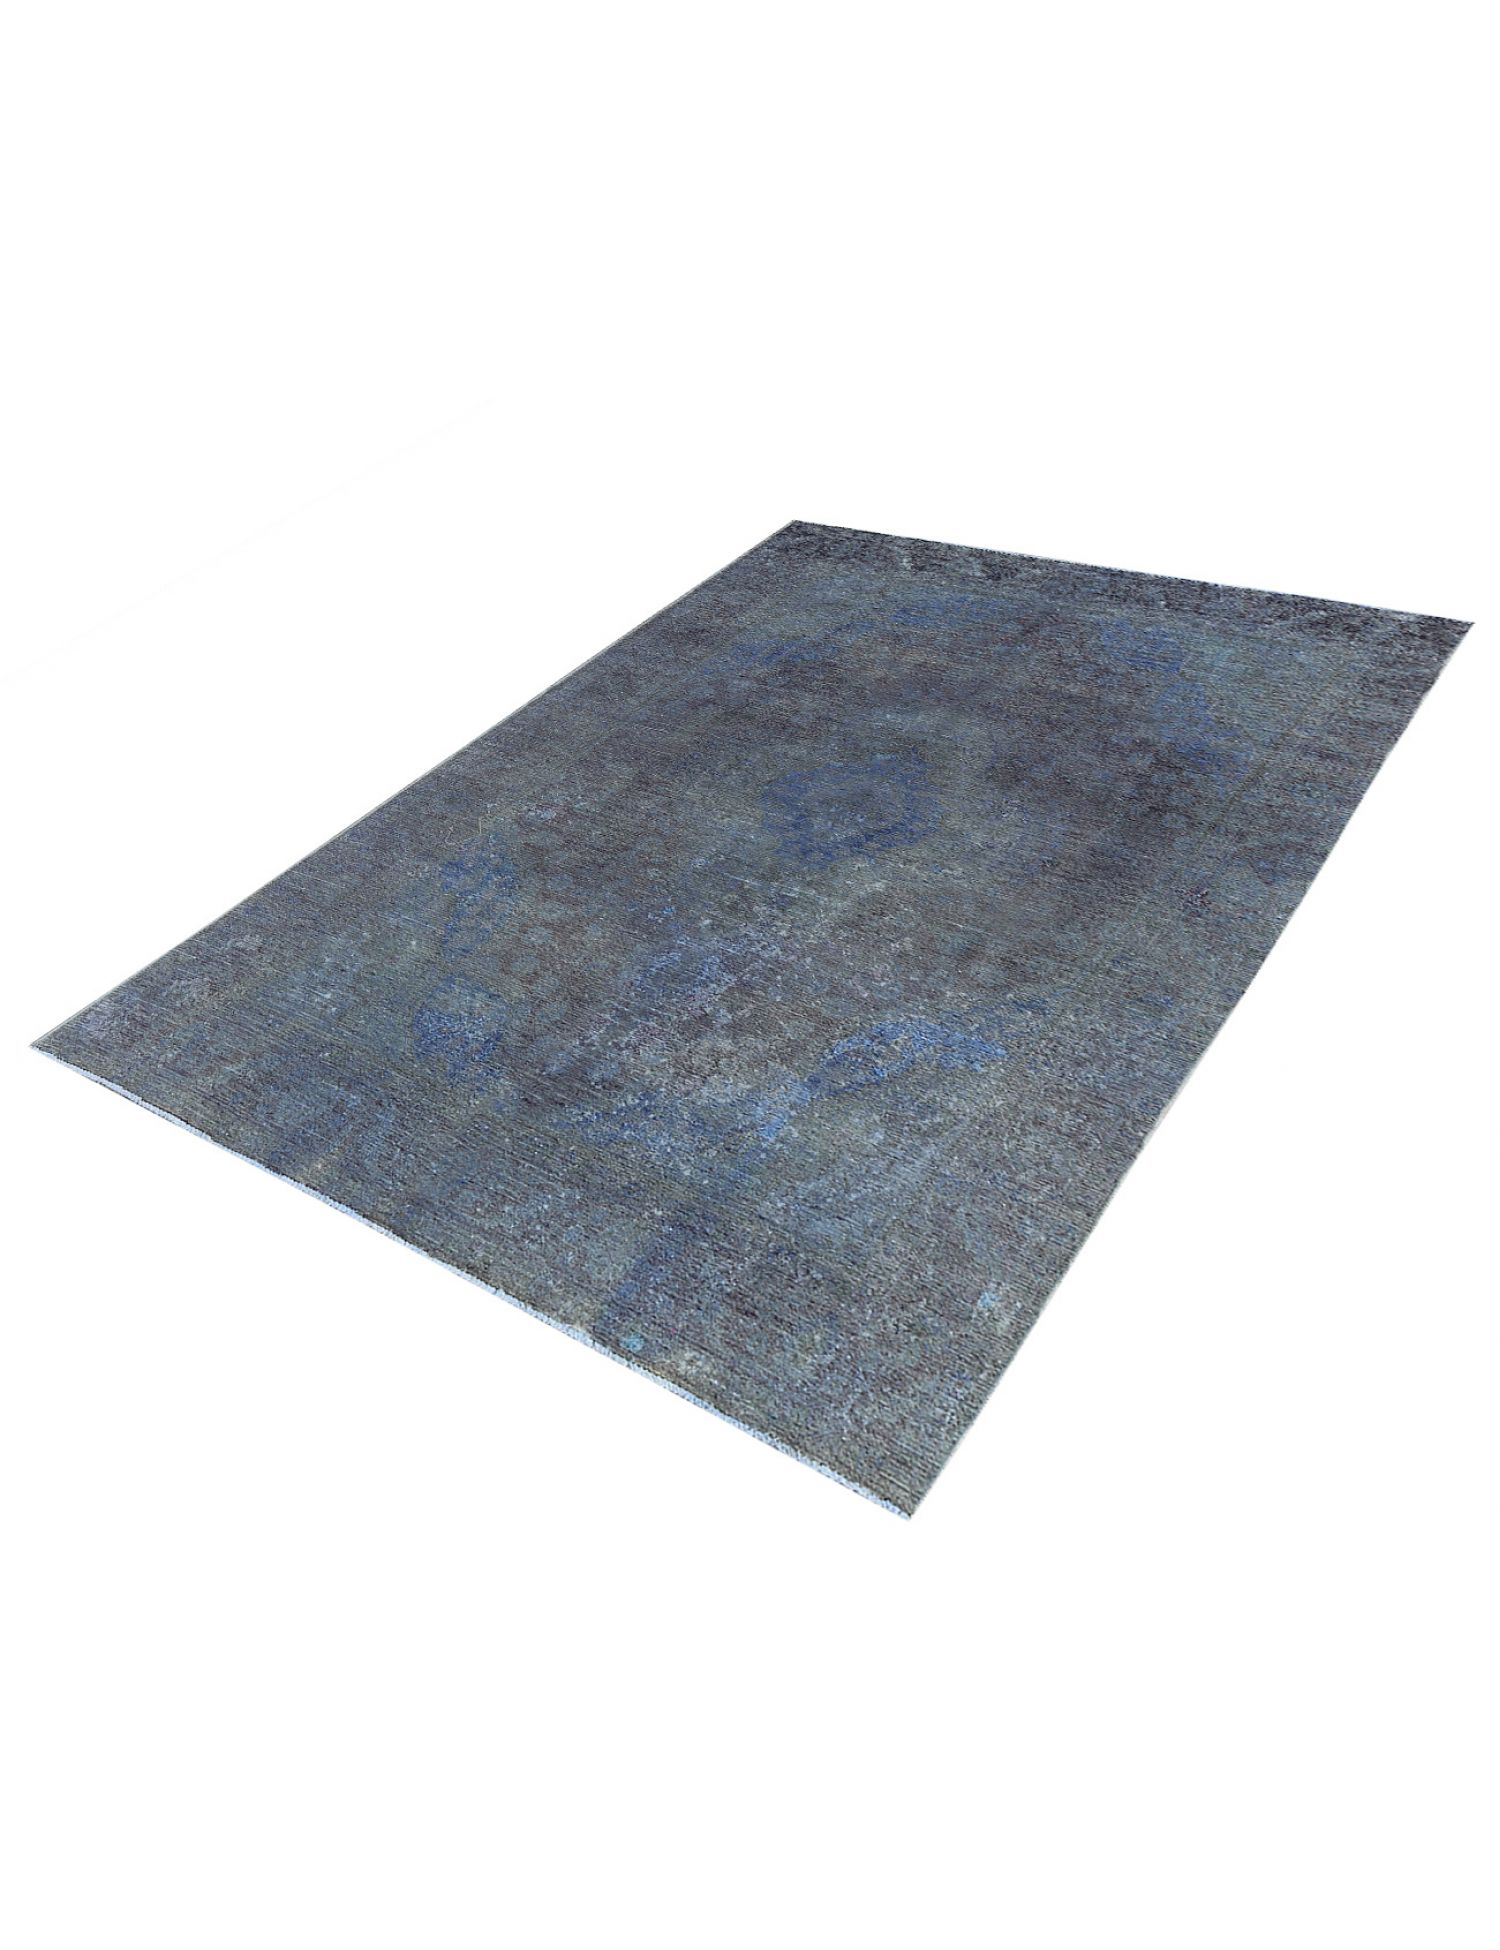 Vintage Carpet  blue <br/>326 x 235 cm